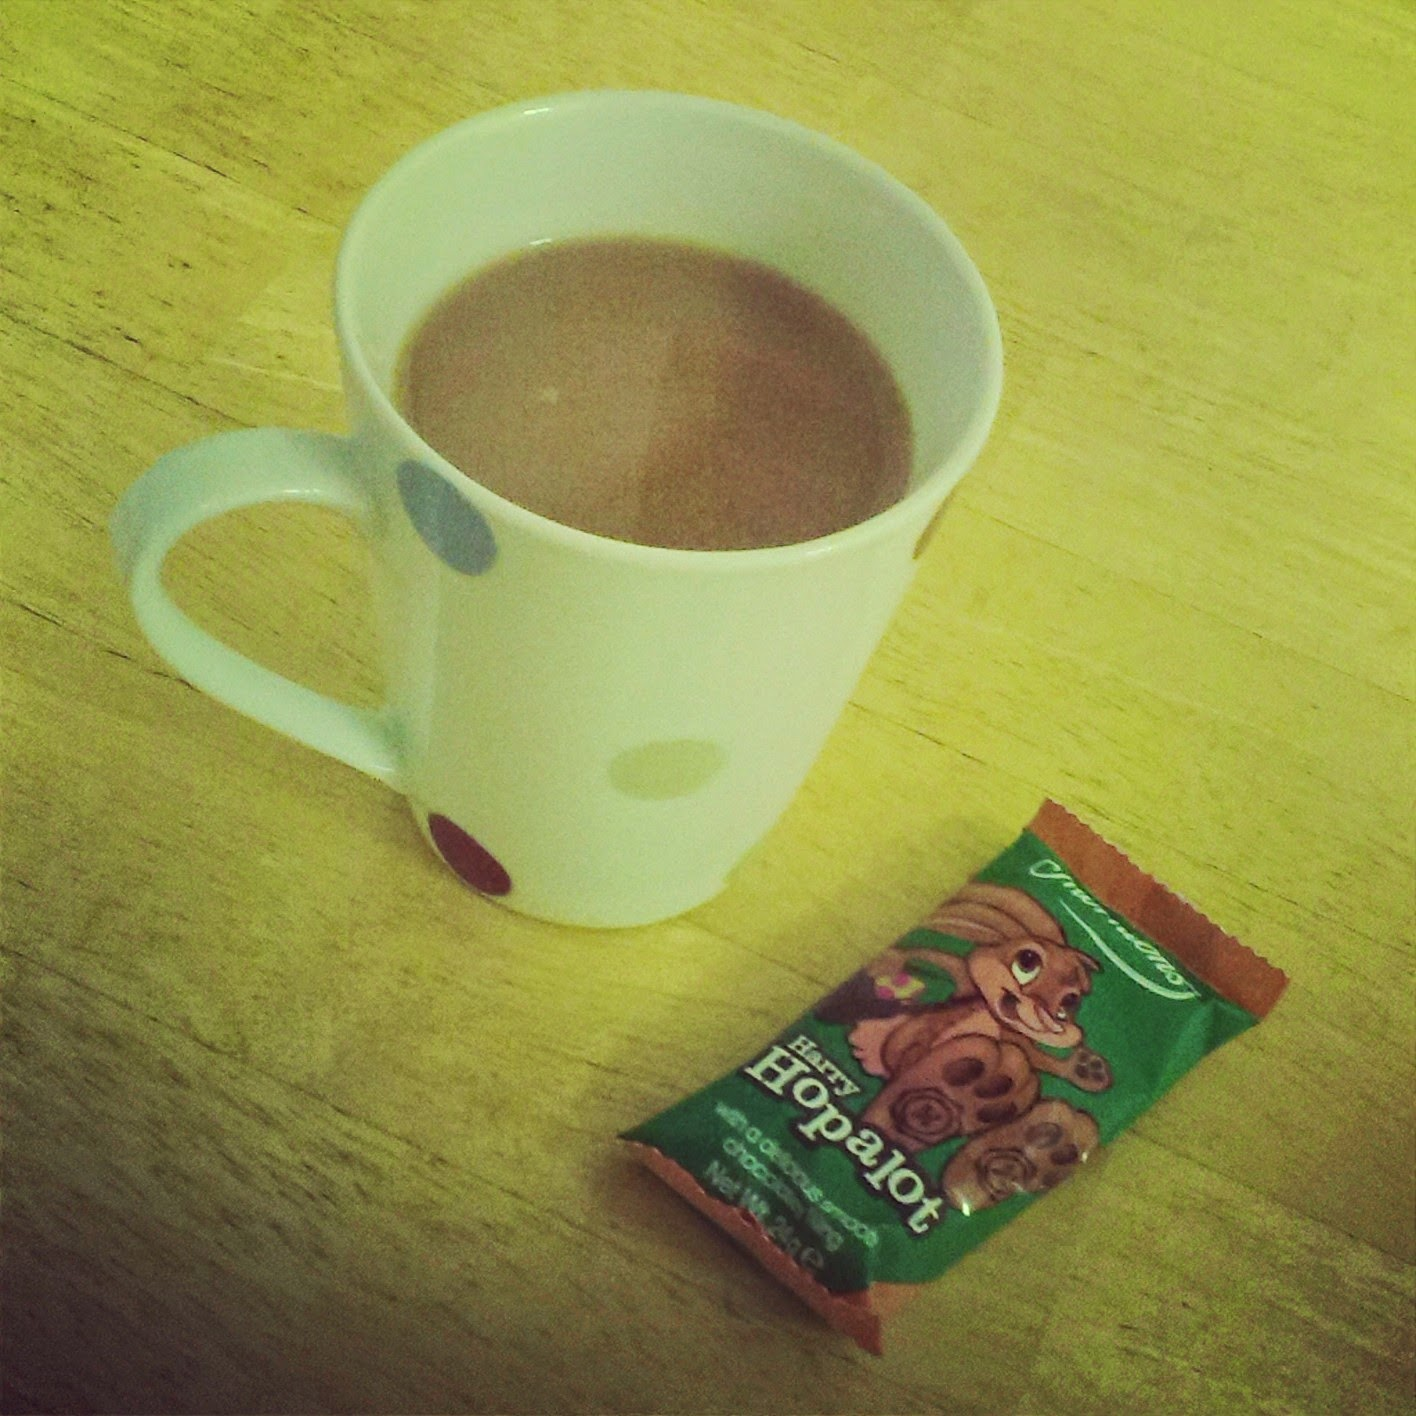 Tea and Harry Hopalot Chocolate